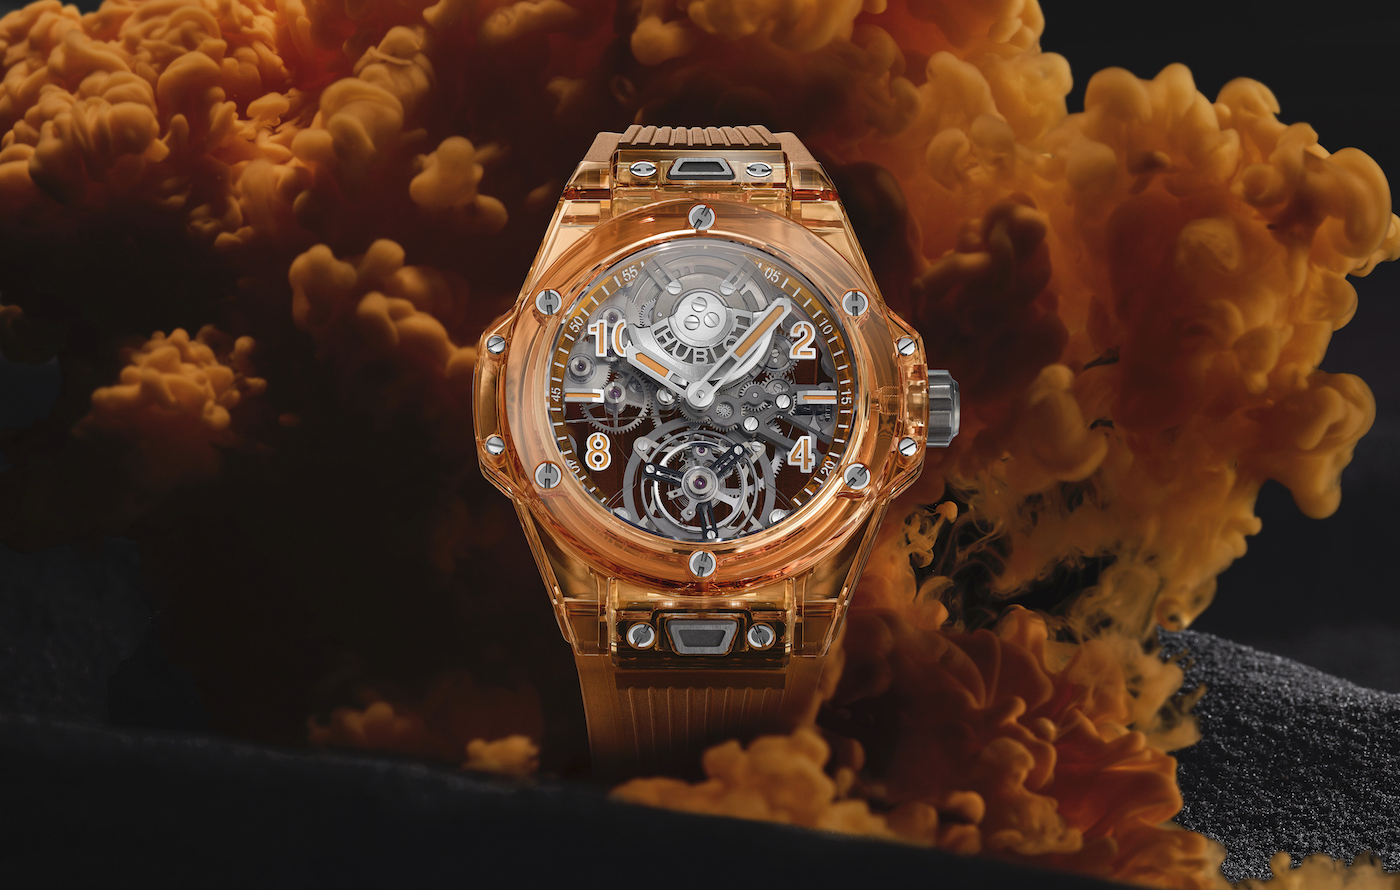 Bulgari, Zenith, Hublot: an introduction to their 2021 releases